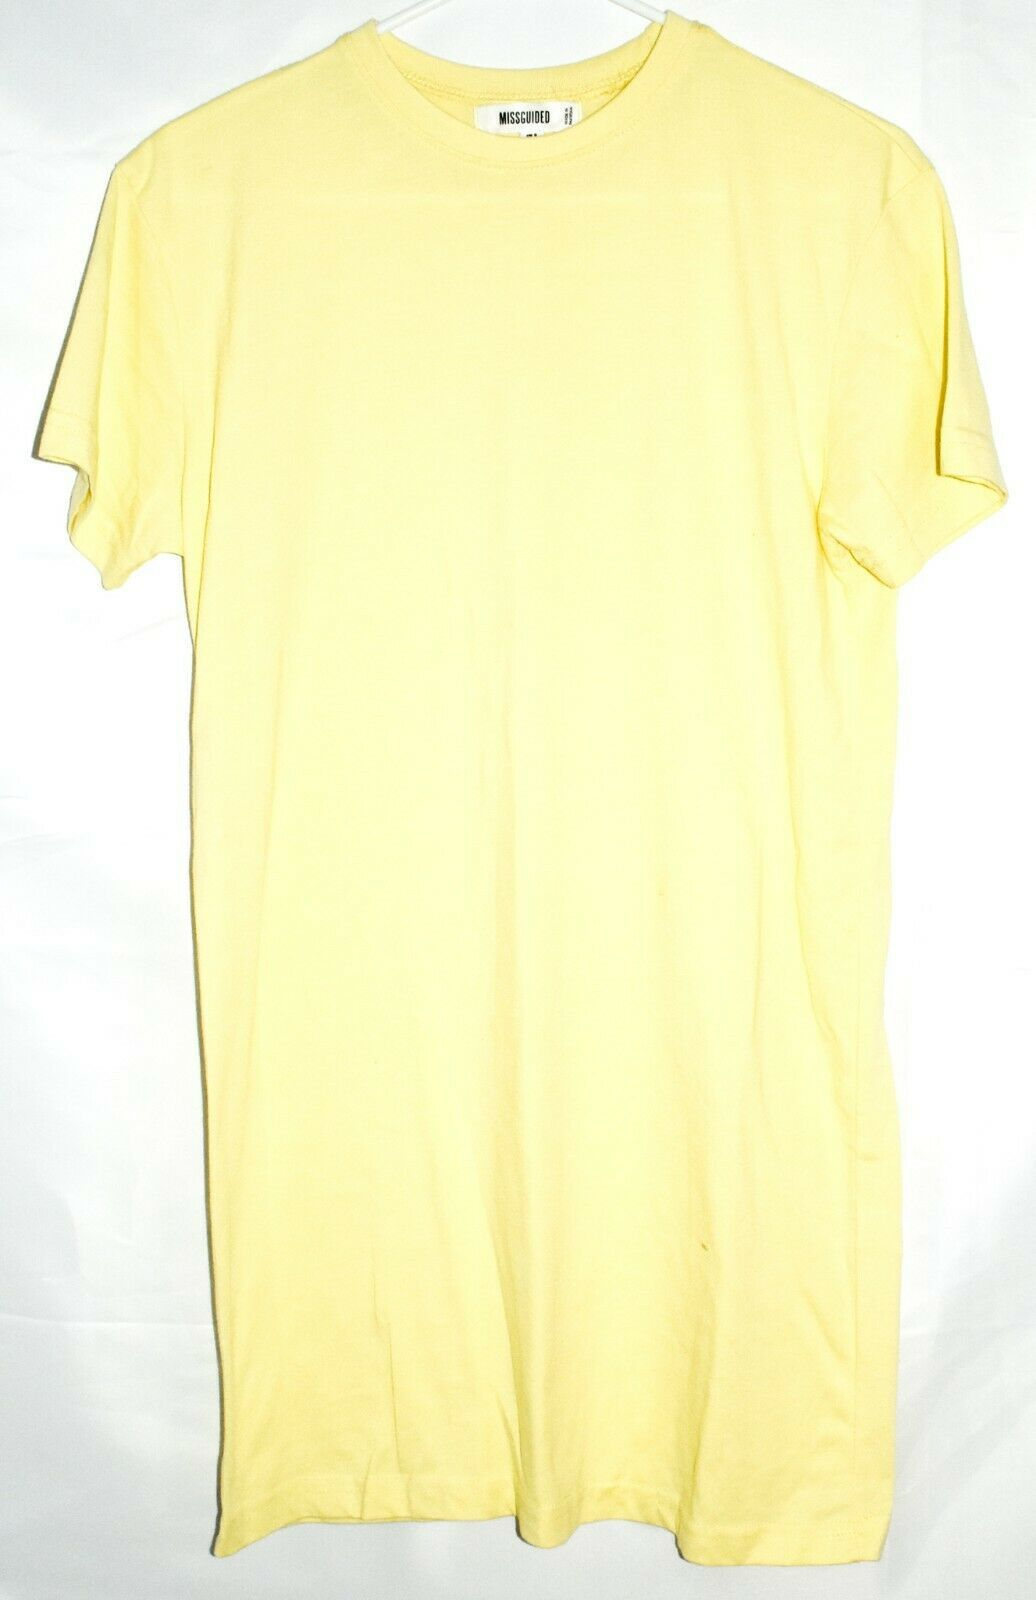 Missguided Pastel Yellow Polyester Blend Crew Neck T-Shirt Dress US 2 | UK 6